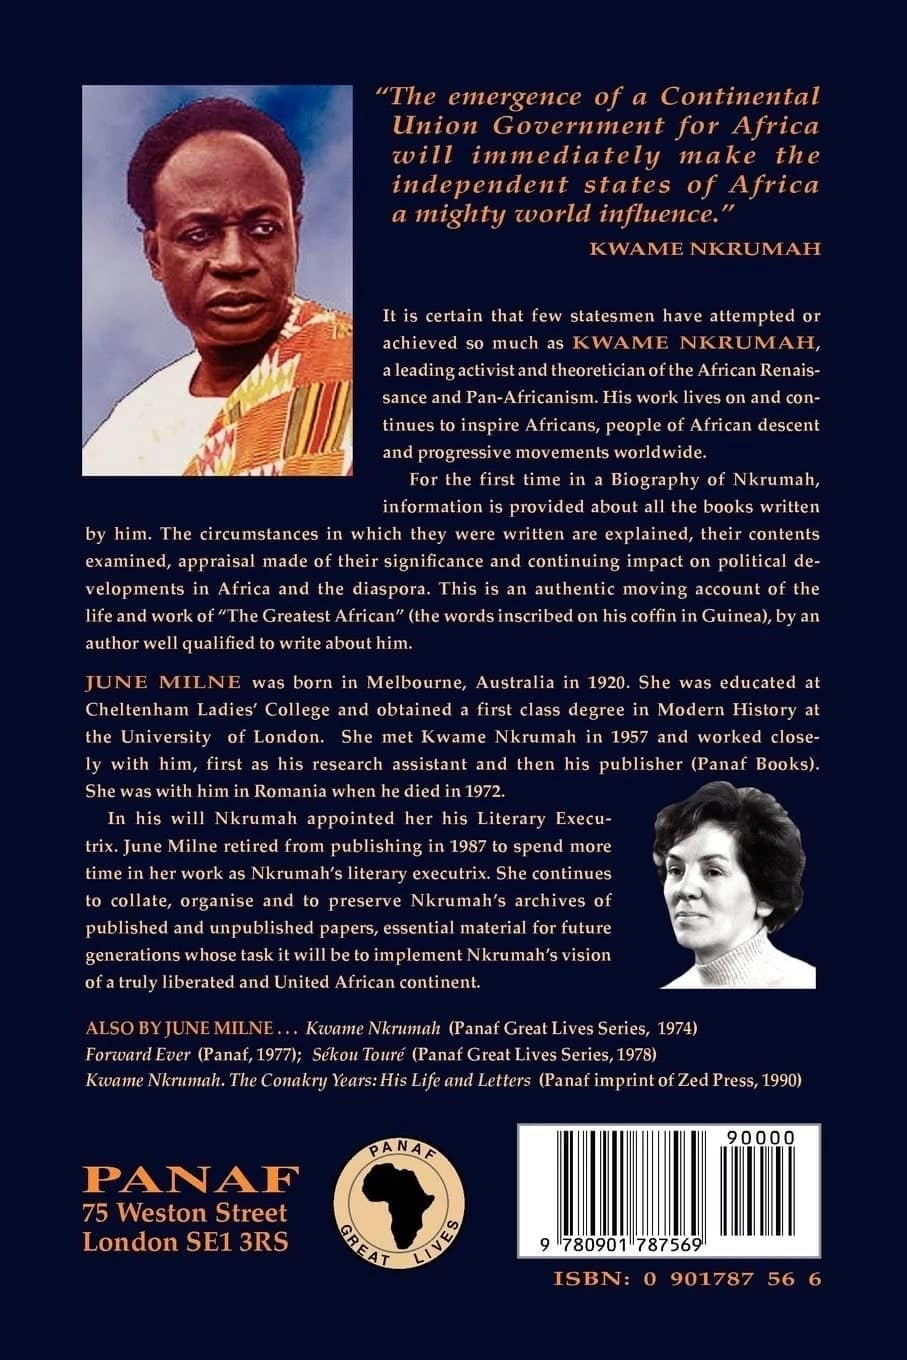 Kwame Nkrumah's editorial assistant dies aged 98